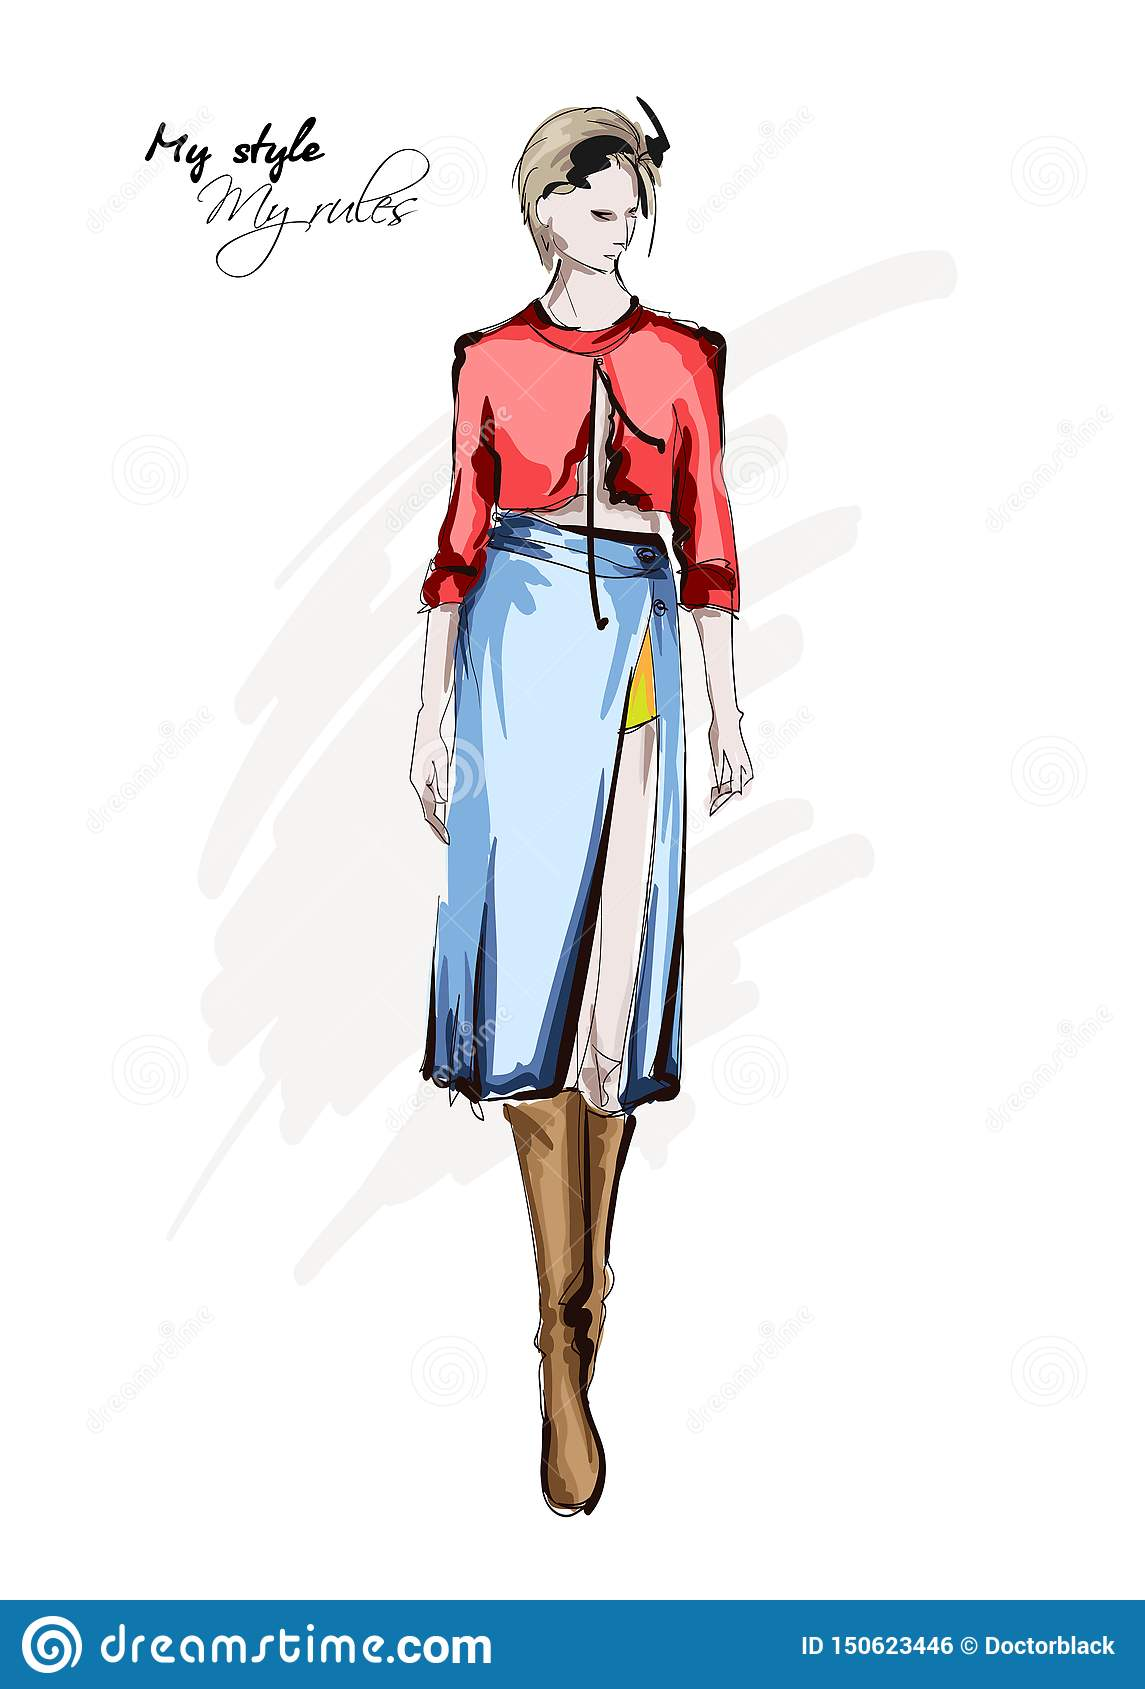 Hand Drawn Beautiful Young Woman In Skirt And Blouse Stylish Autumn Outfit Fashion Woman Look Fashion Model Posing Sketch Stock Illustration Illustration Of Beautiful Abstract 150623446